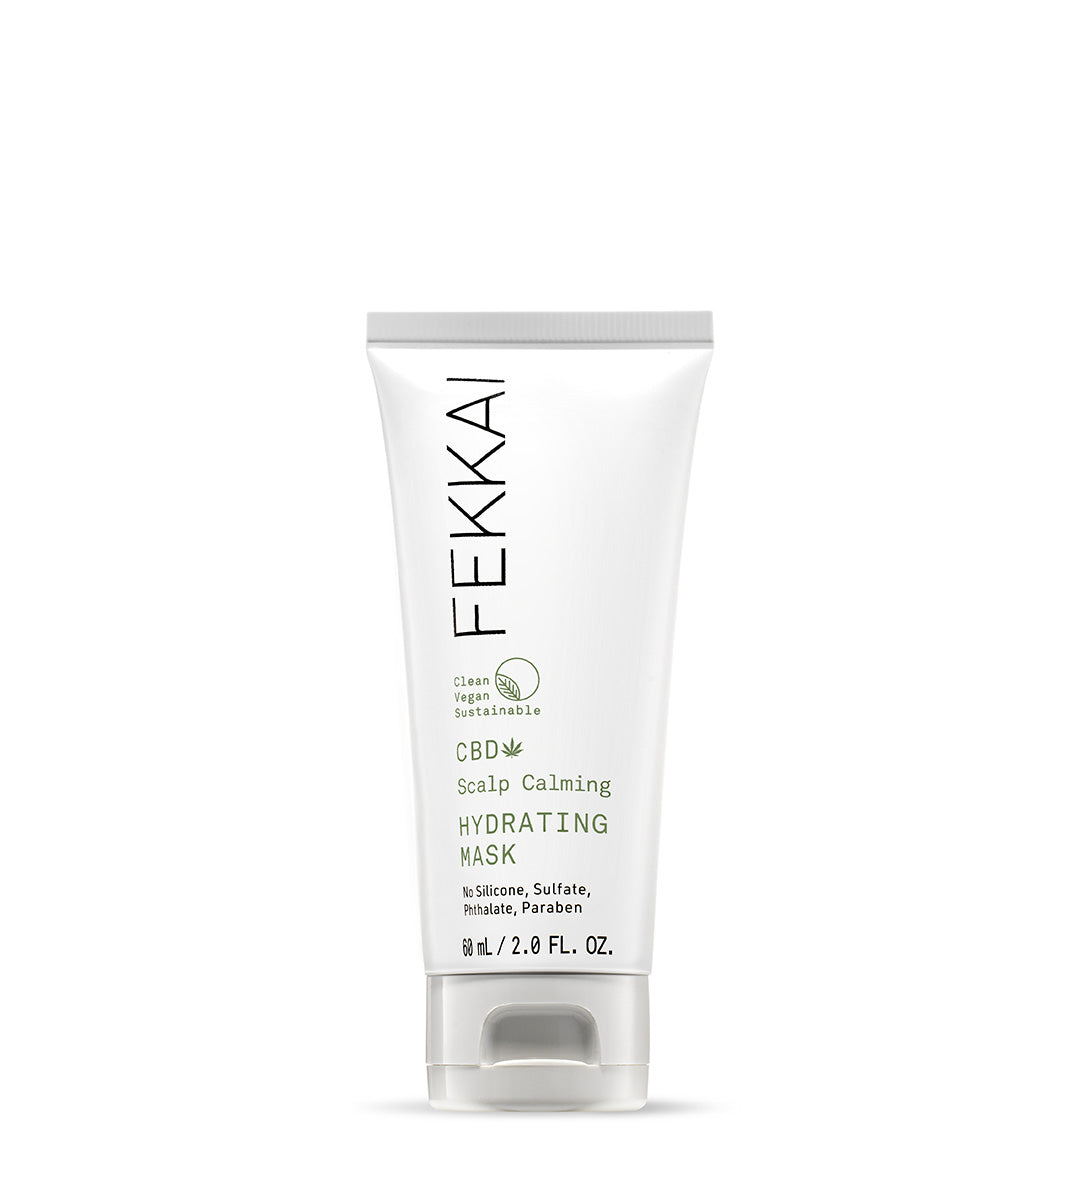 Bottle of Fekkai CBD Scalp Calming Hydrating Mask Travel Size